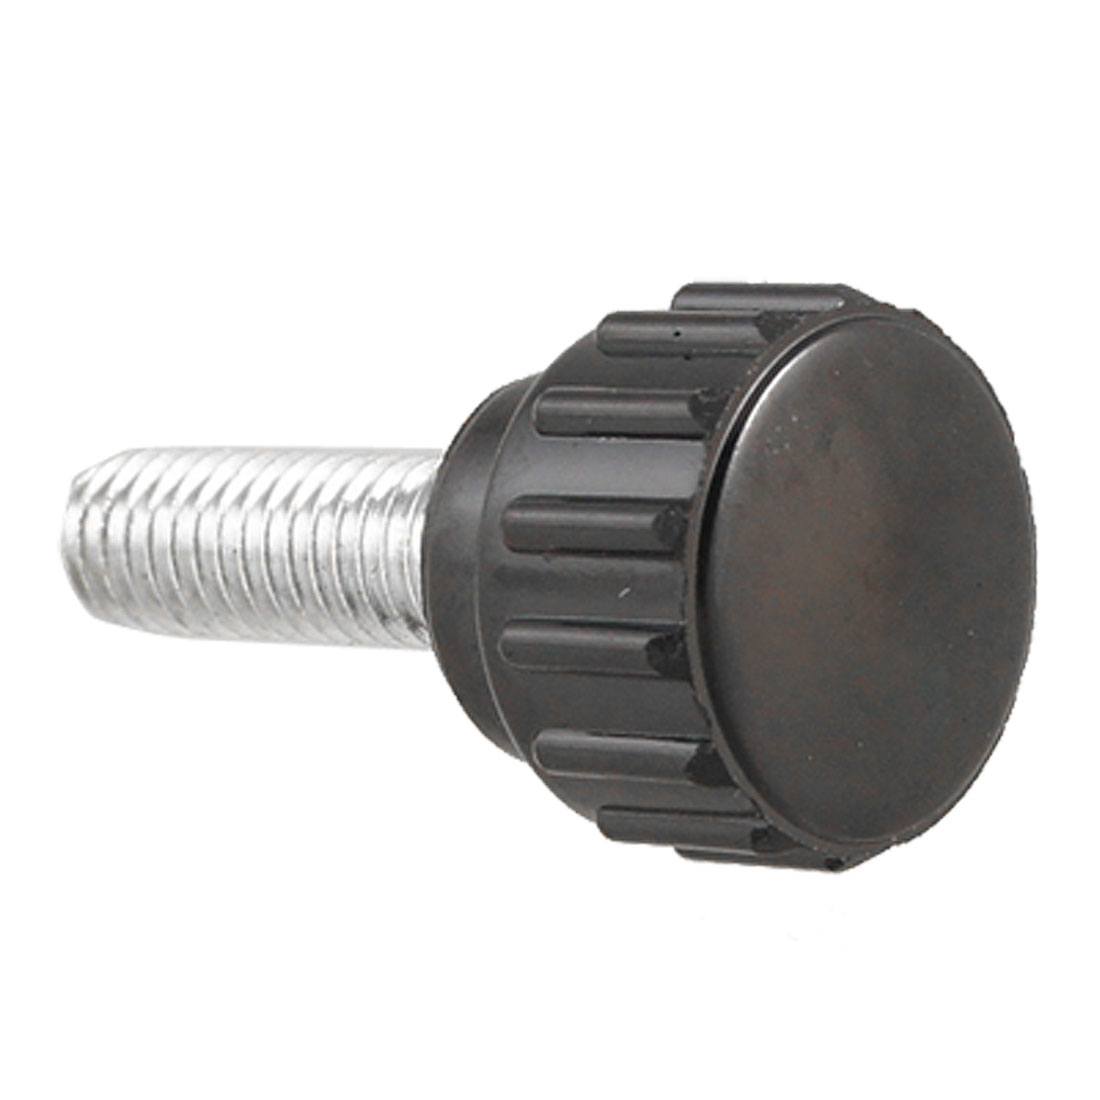 Metal 5mm Diameter 15mm Length Male Thread Knurled Knob